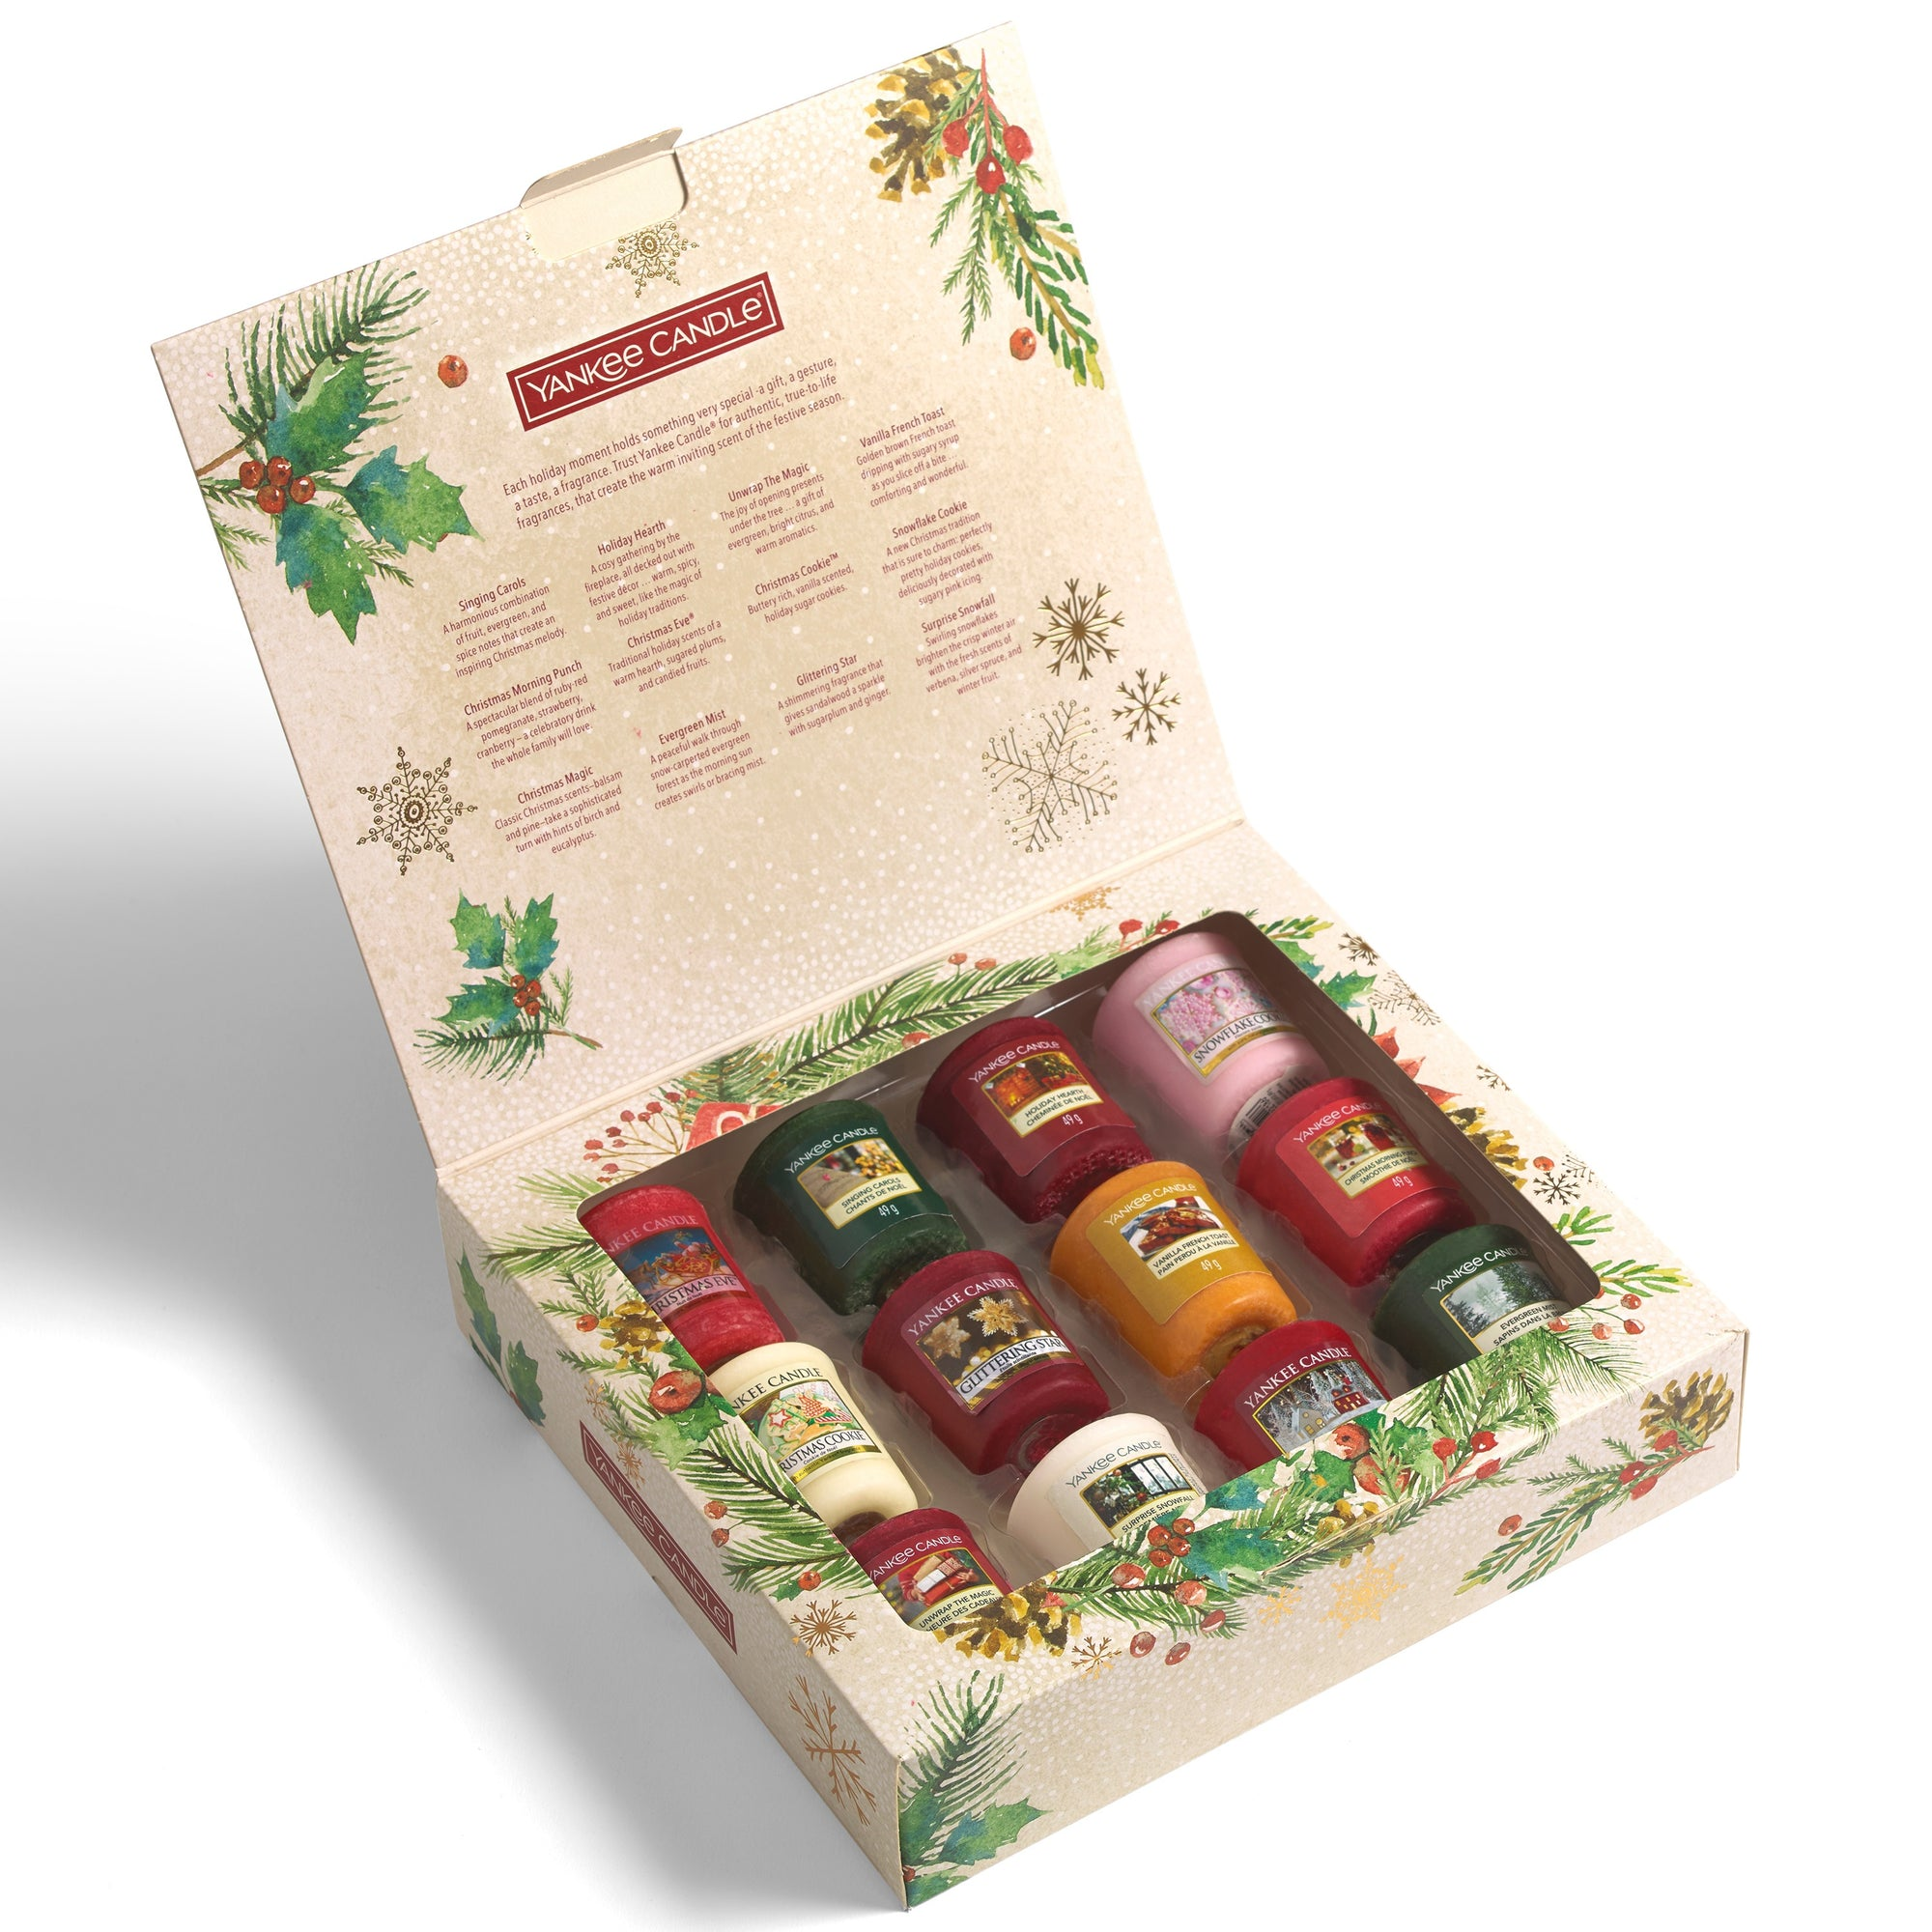 Yankee Candle - 12 Votive Candle Gift Set